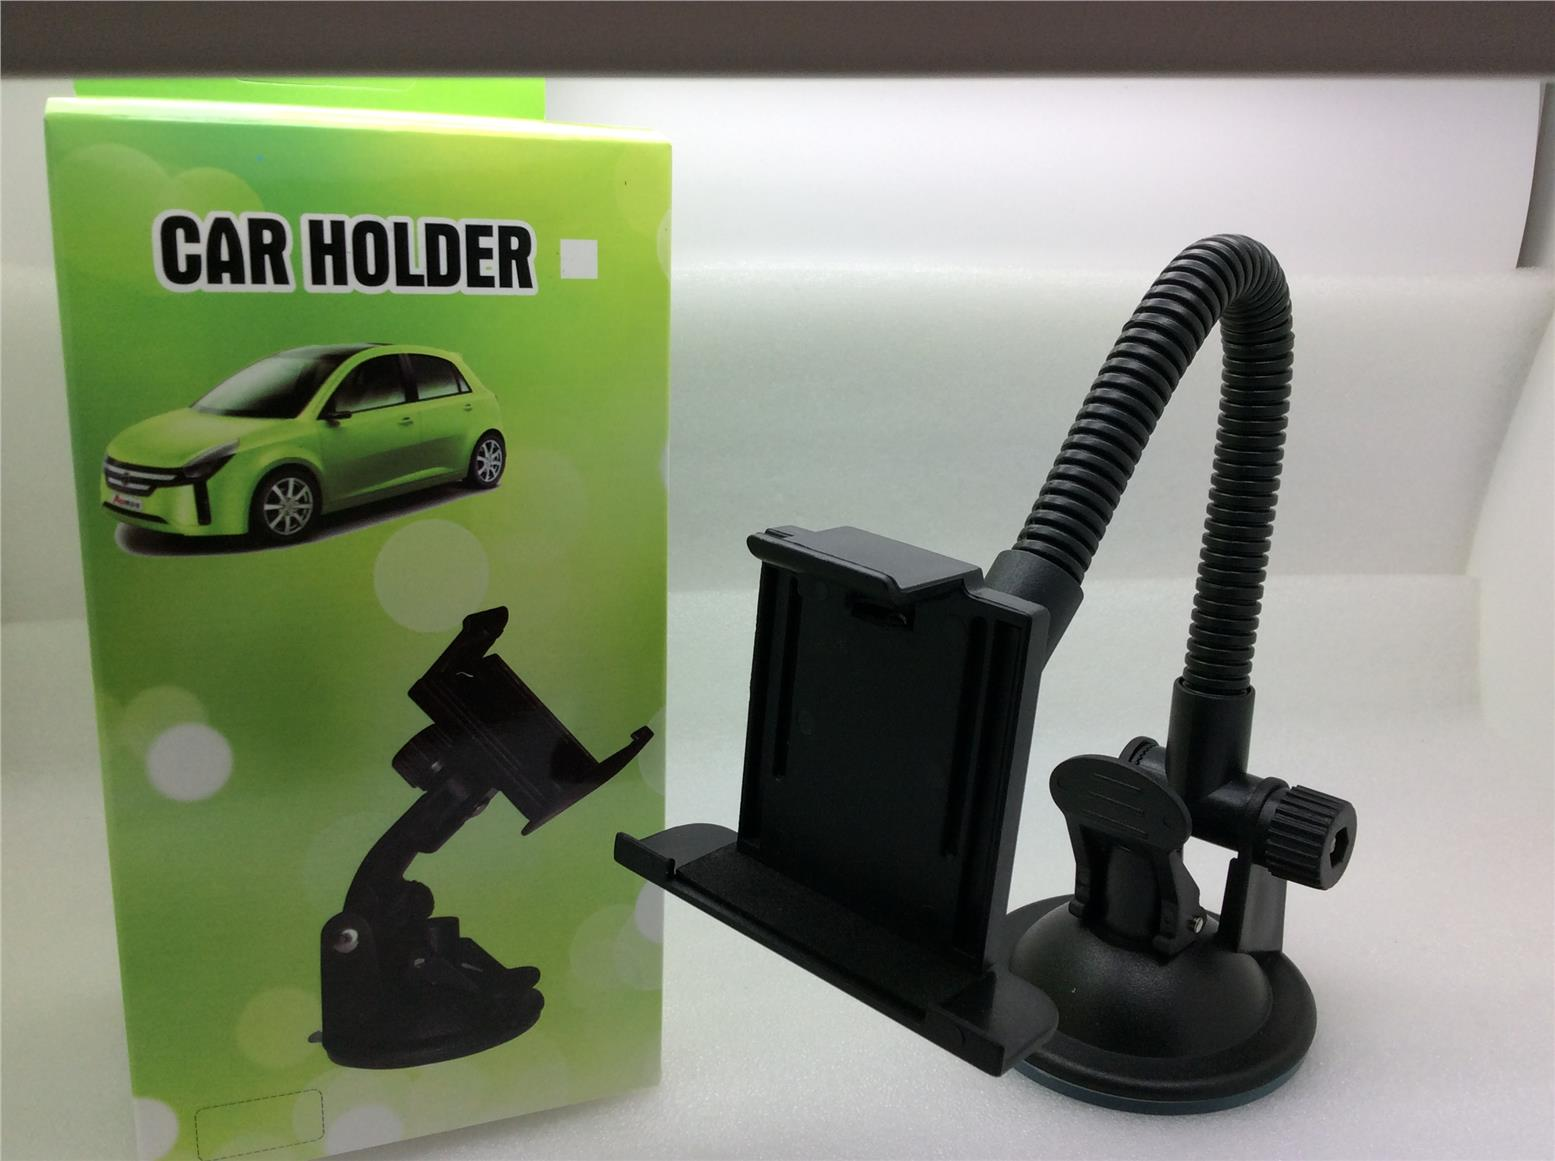 Handphone holder for car (a)